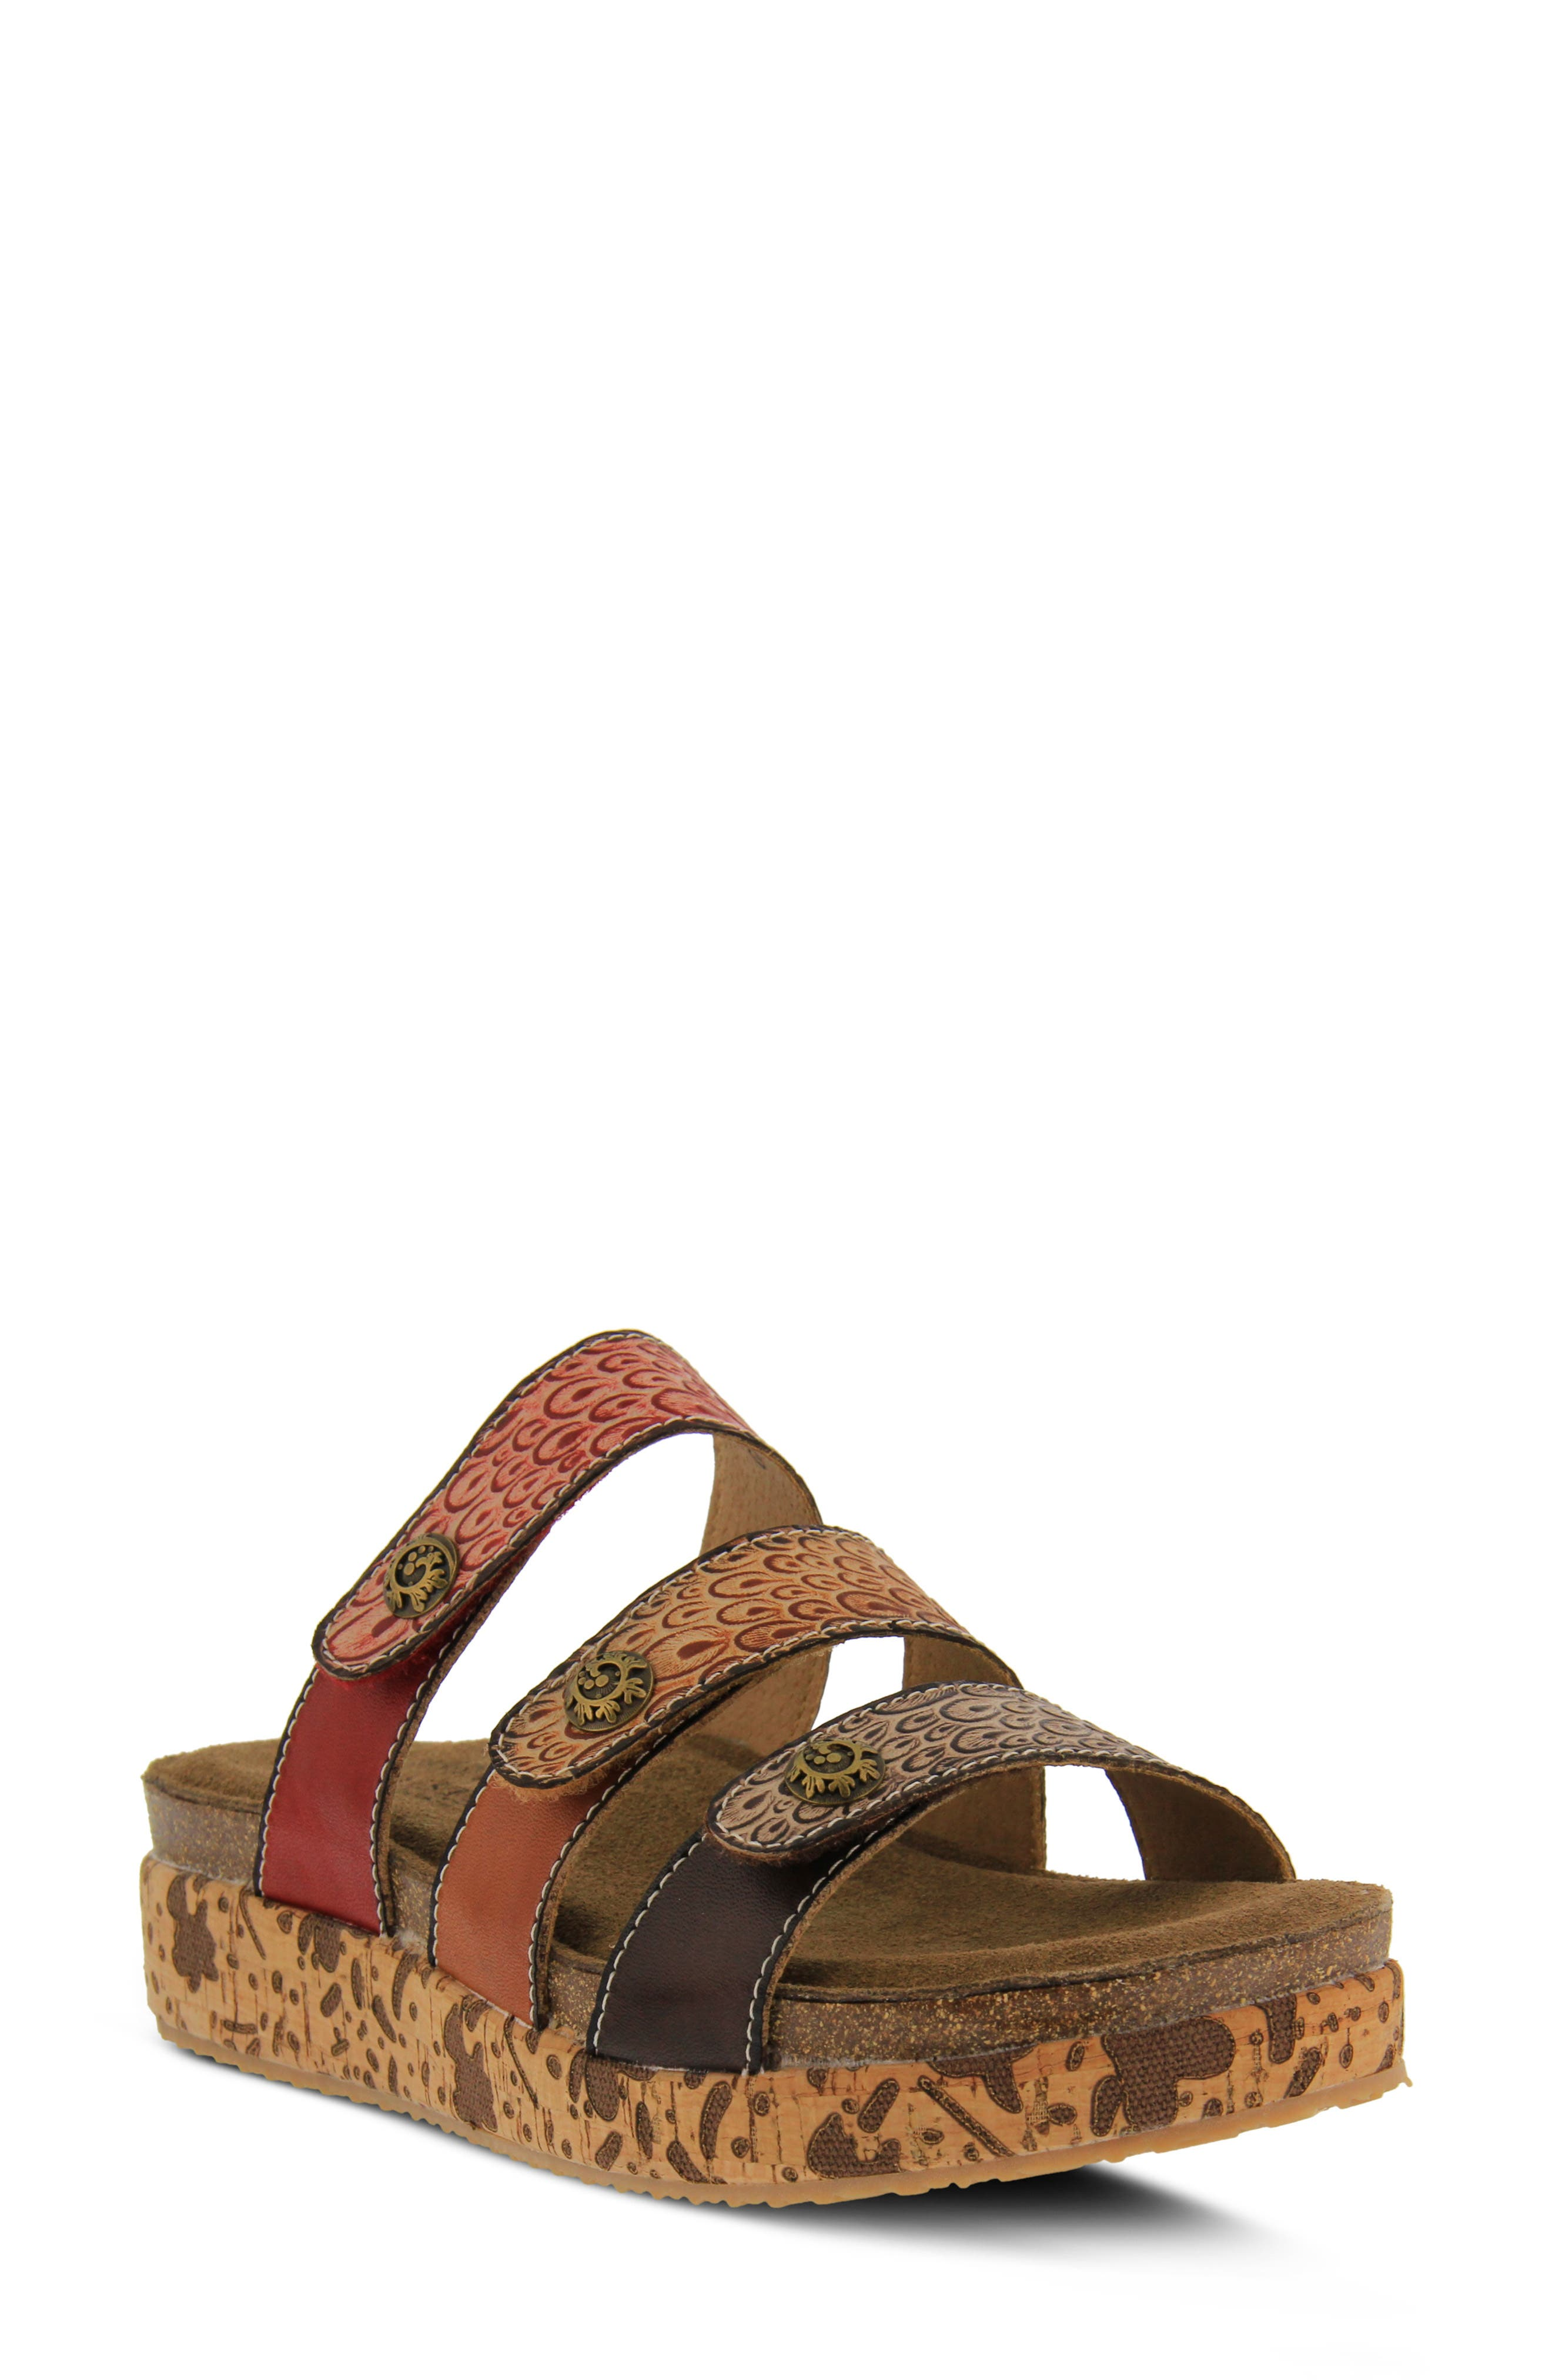 An effusive mix of colors and artisanal details, including an embossed cork-wrapped platform, turn this slide into a walking work of art. All three straps can be adjusted for a more secure fit. Style Name:L\\\'Artiste Keena Sandal (Women). Style Number: 5820869 1. Available in stores.